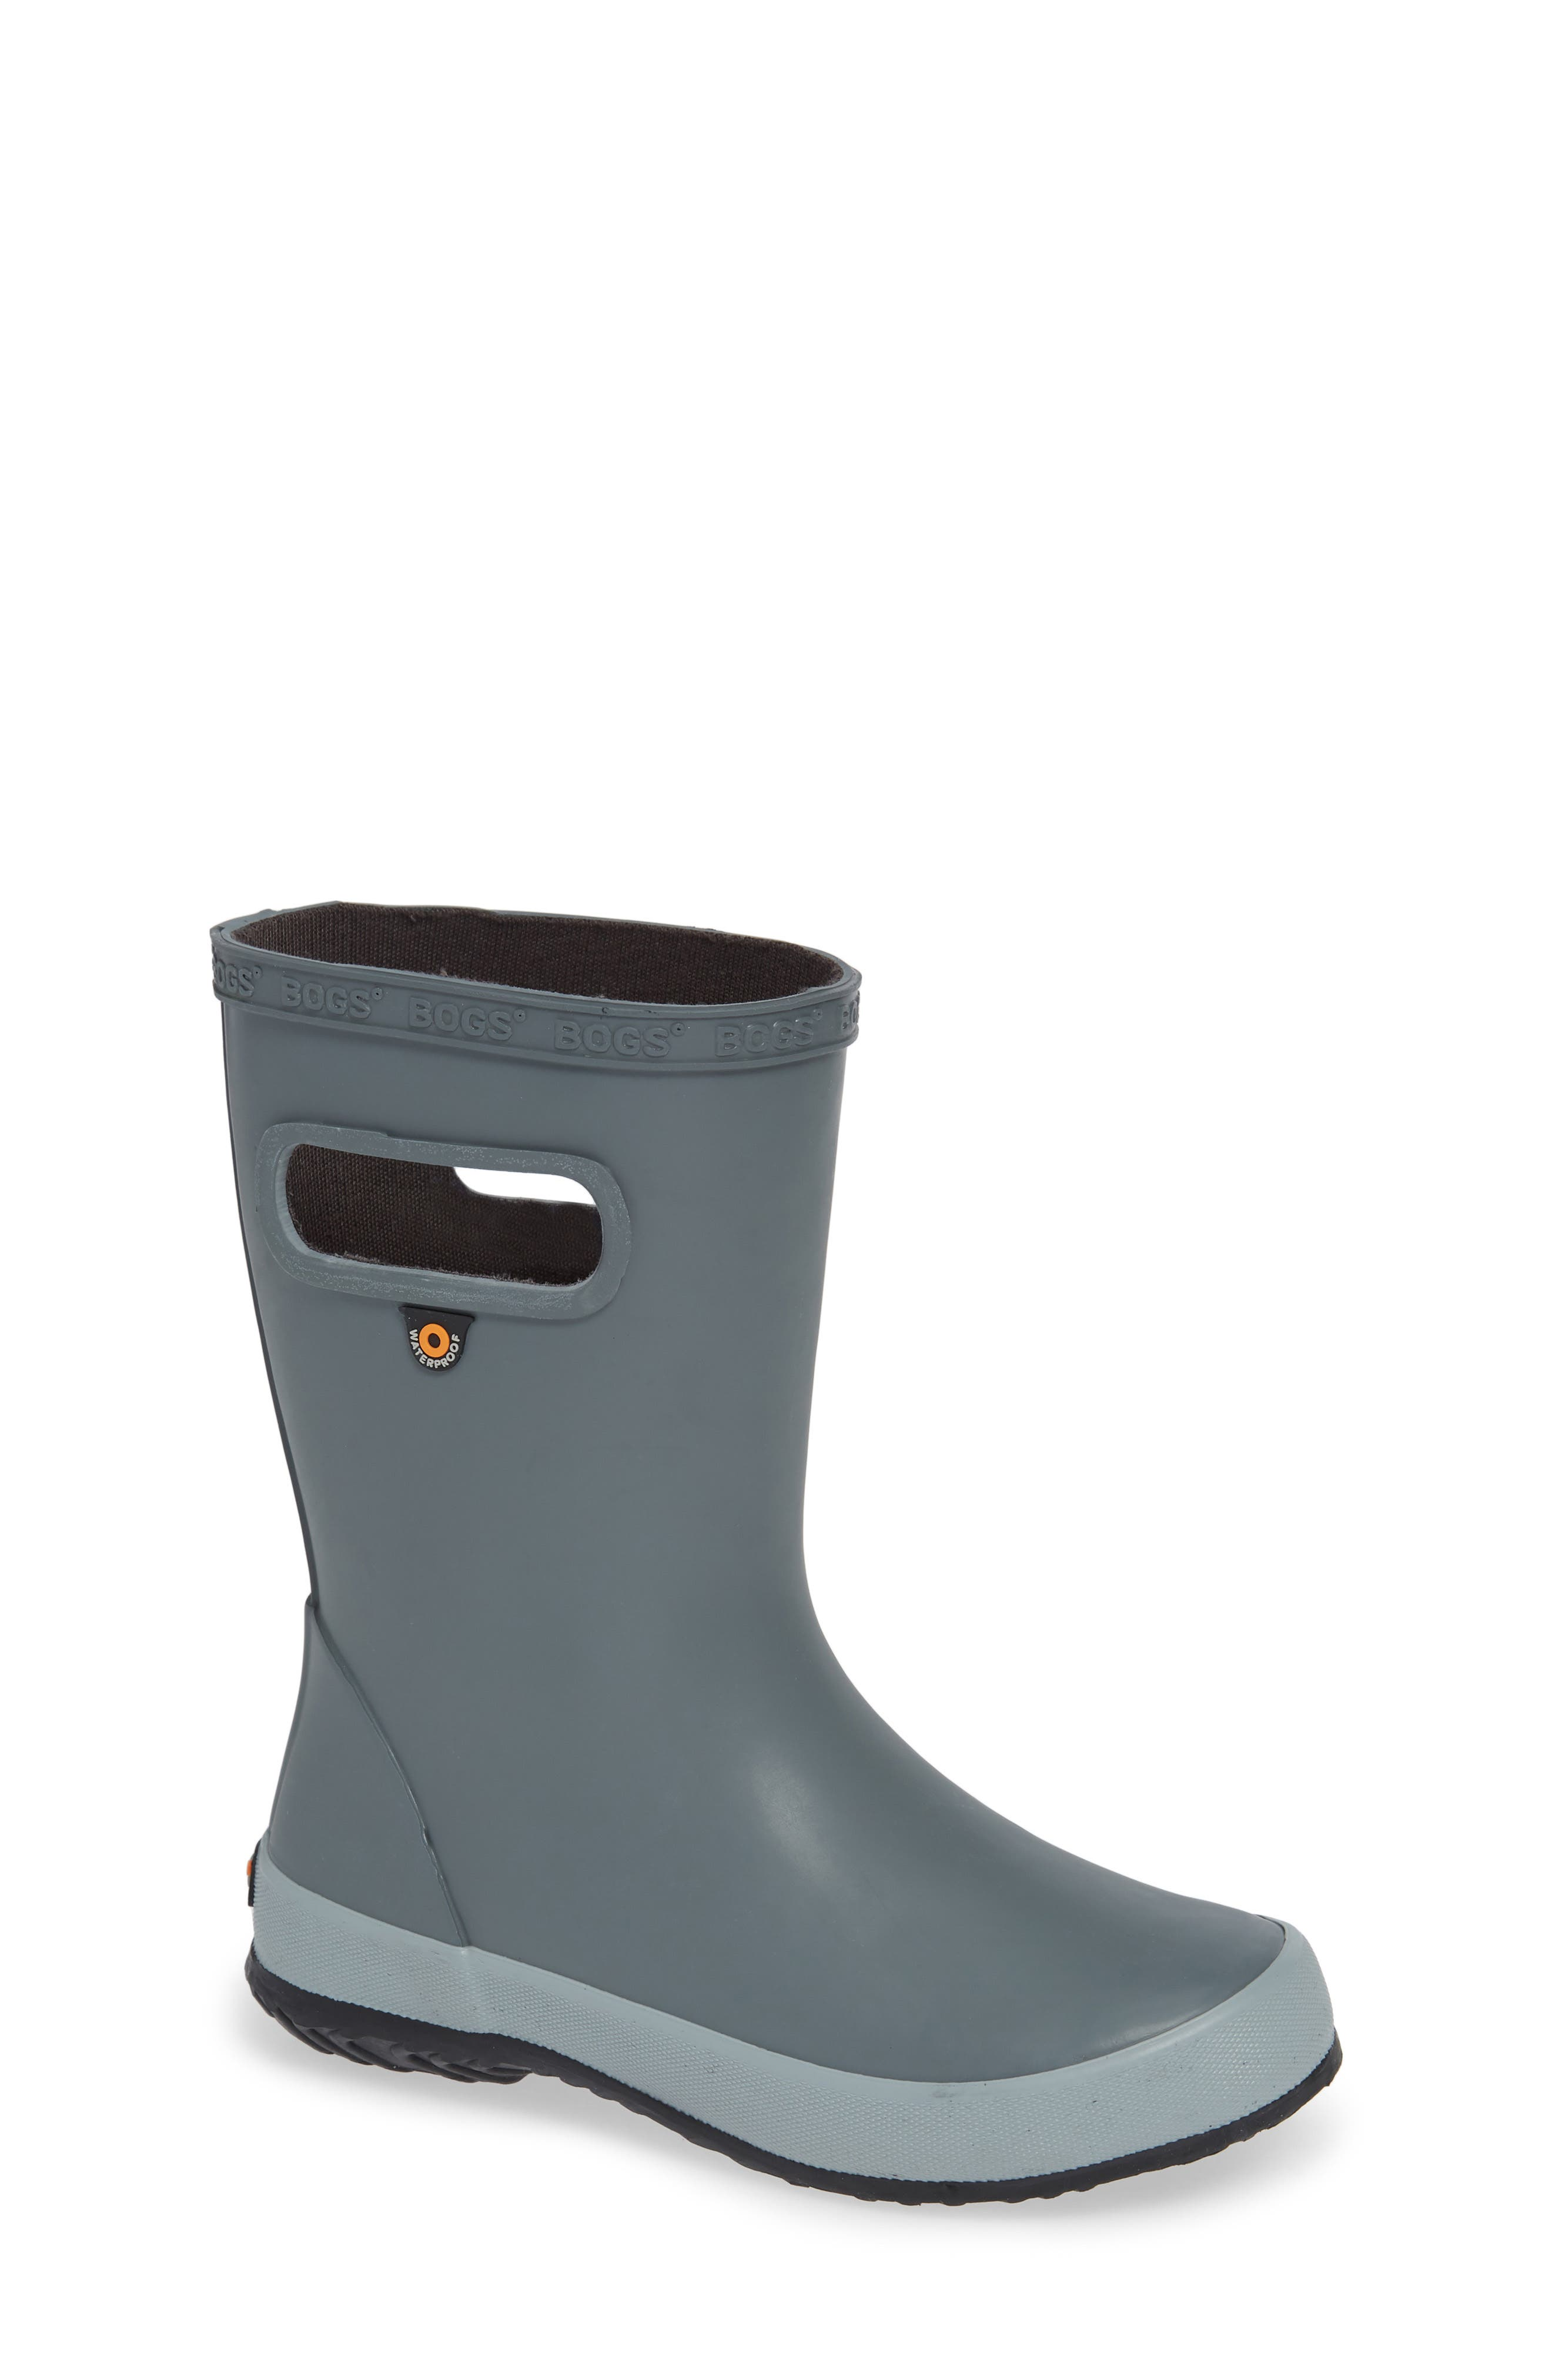 Skipper Solid Rubber Rain Boot,                         Main,                         color, GRAY